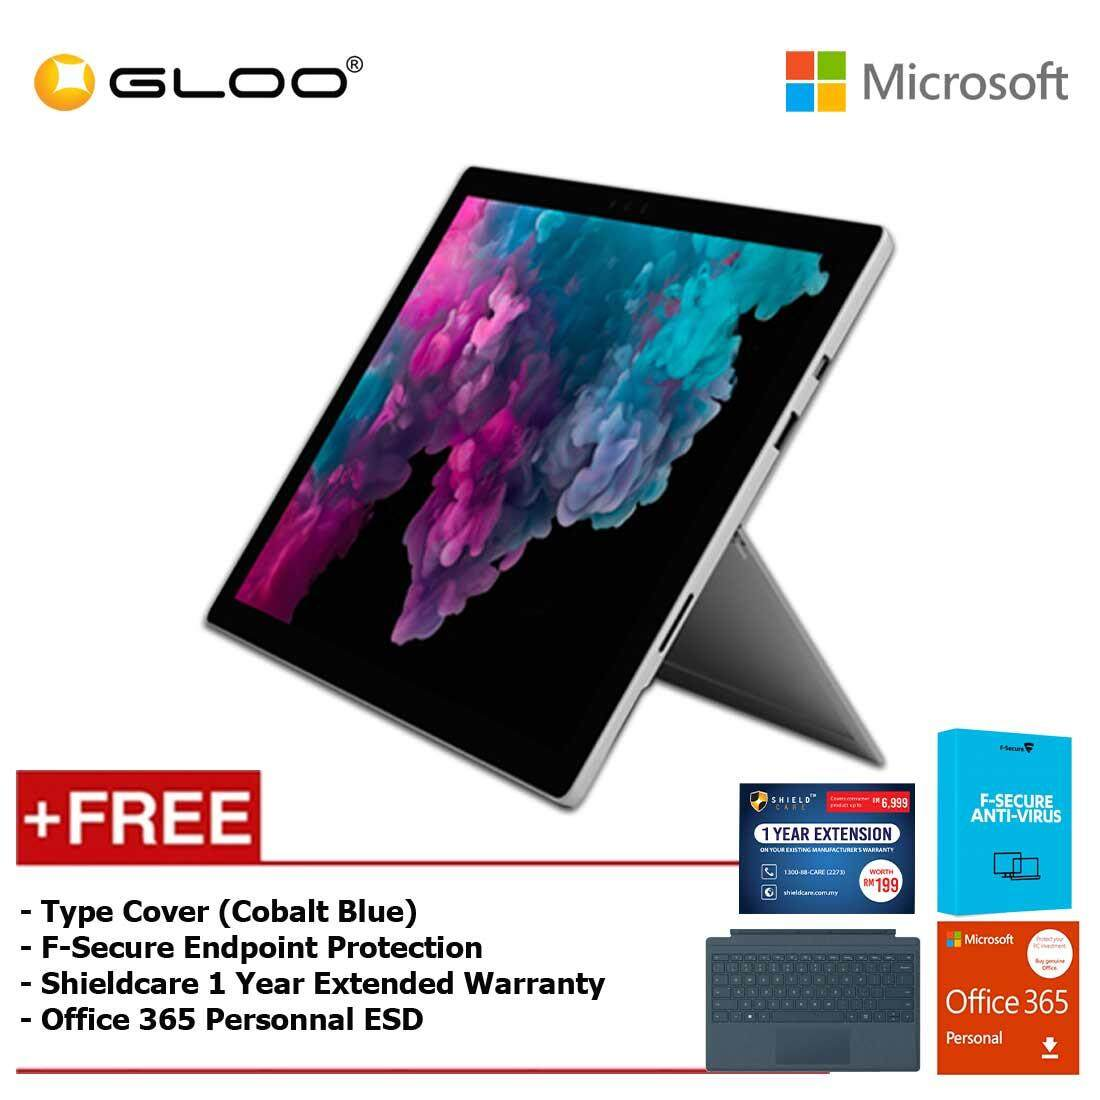 Microsoft Surface Pro 6 Core i5/8GB RAM -128GB + Type Cover Cobalt Blue + Office 365 Personal (ESD) + F-Secure Endpoint Protection + Shieldcare 1 Year Extended Warranty